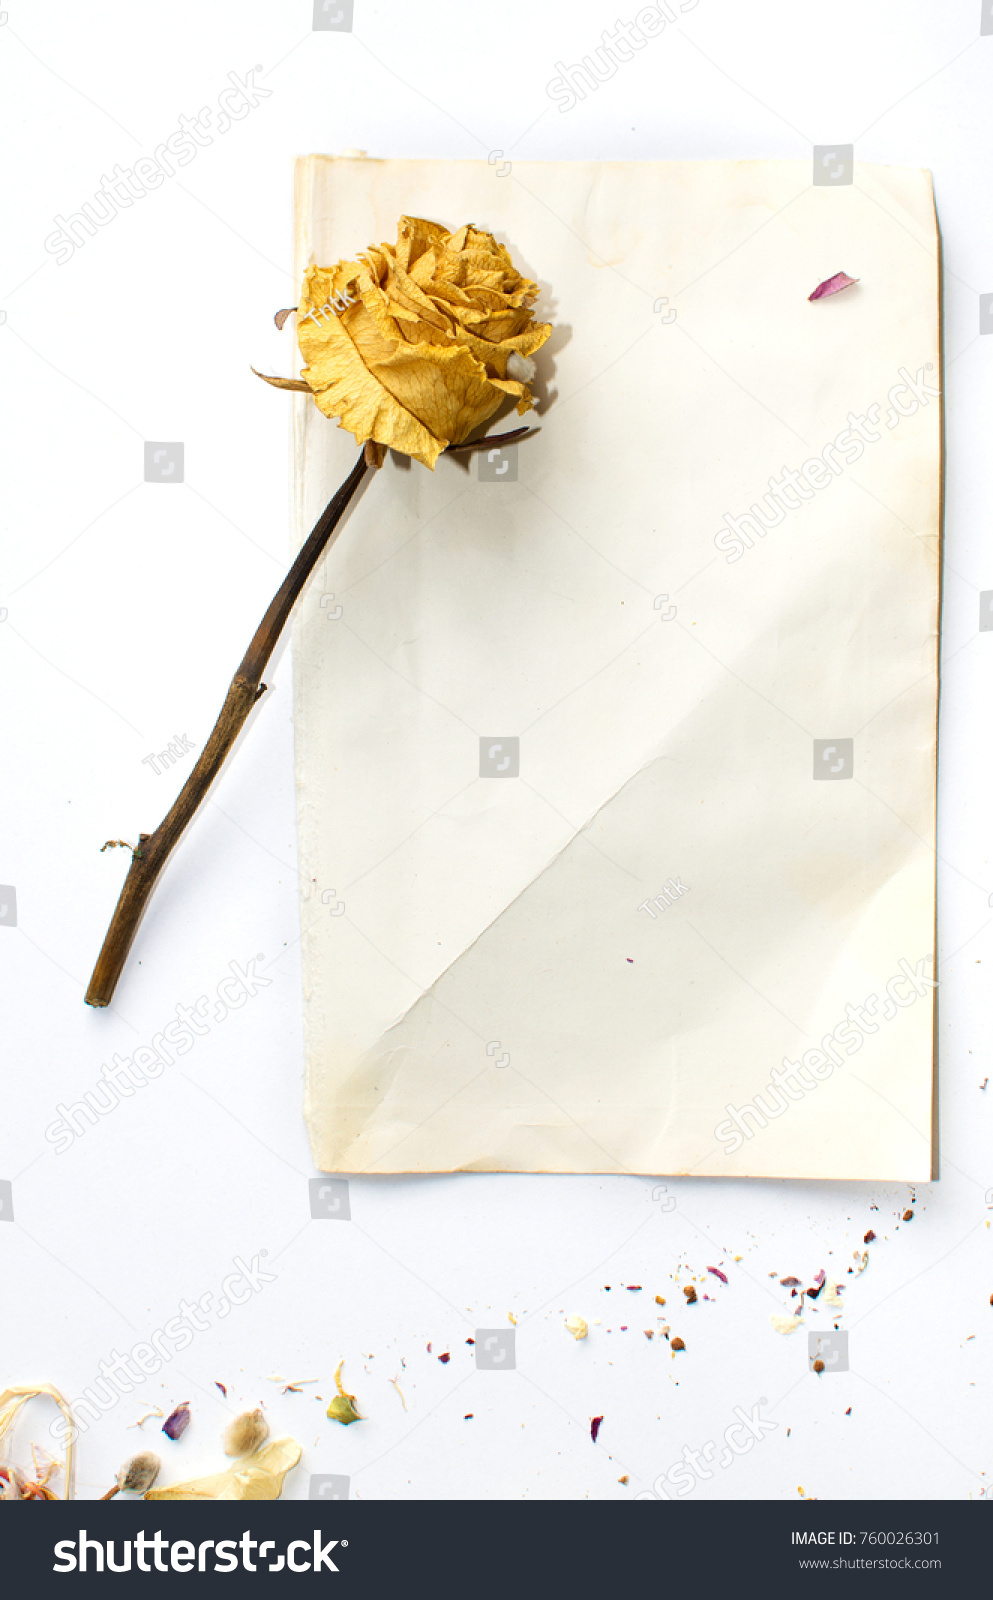 Dried Flowers Lying On White Sheet Stock Photo Royalty Free